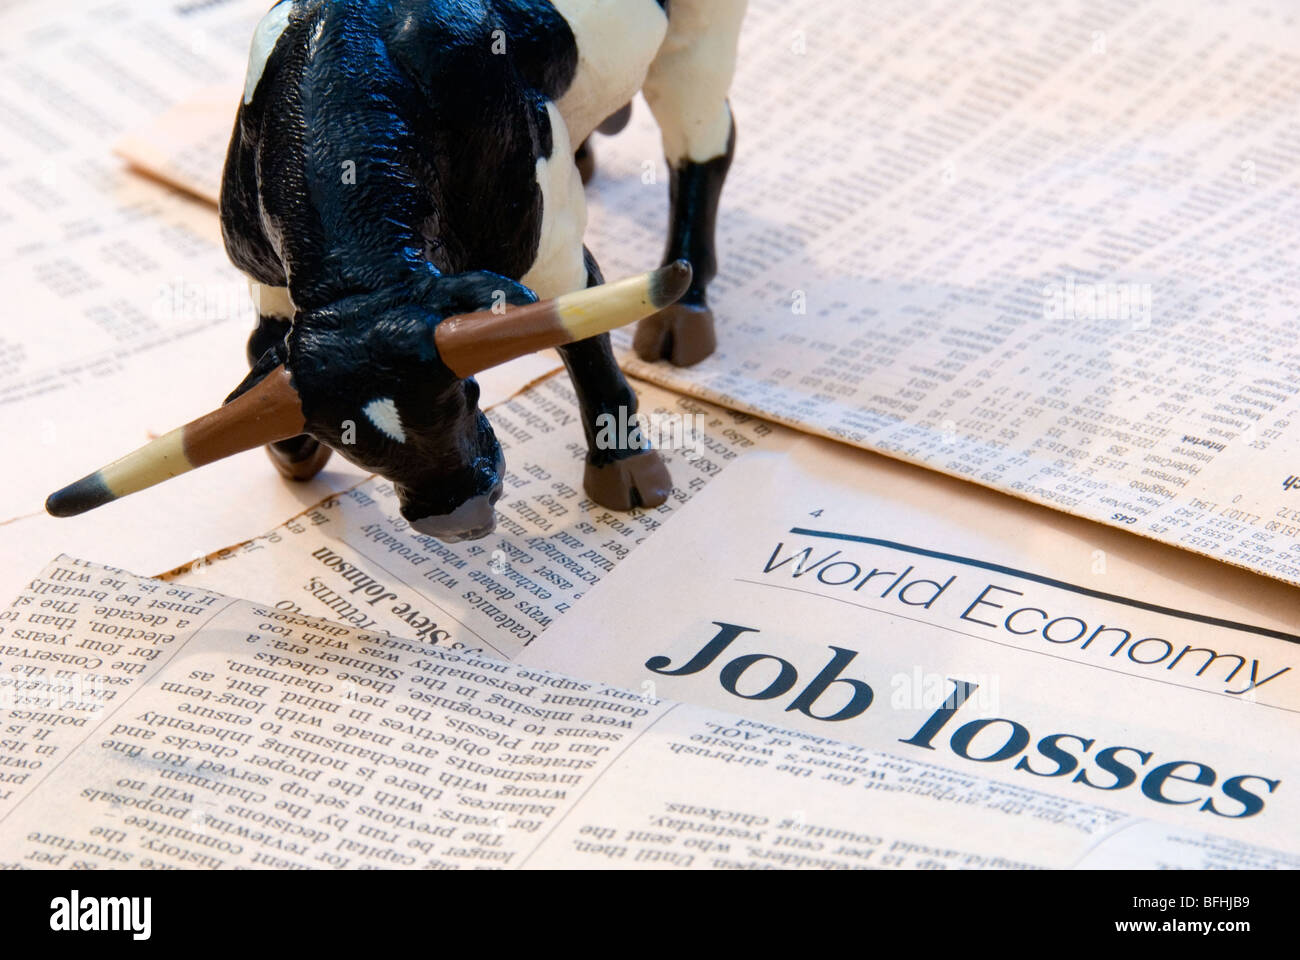 A Bull over the World Economy reports of Job Losses representing the Finance Markets - Stock Image